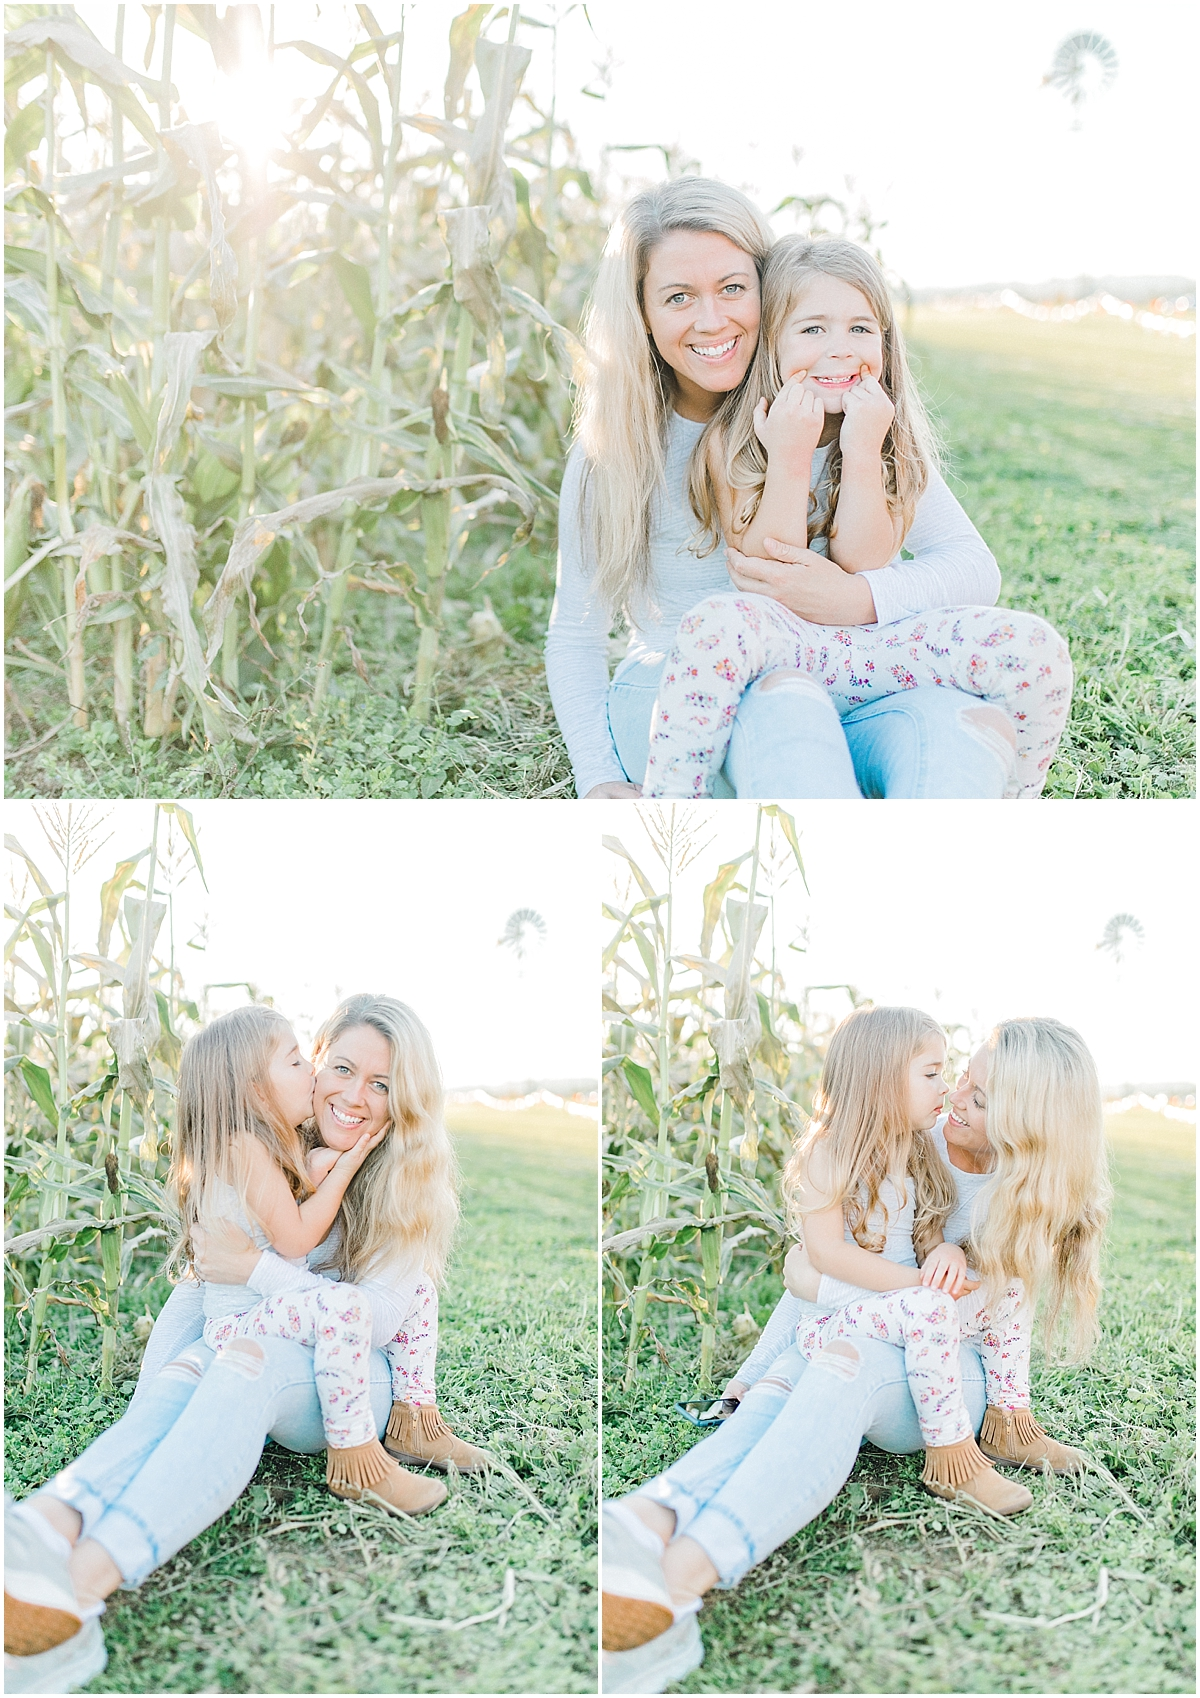 Pumpkin Patch Photo Shoot With Toddler and Mommy | Emma Rose Company Seattle Portland Light and Airy Wedding Photographer | Kindred Presets | Film_0018.jpg